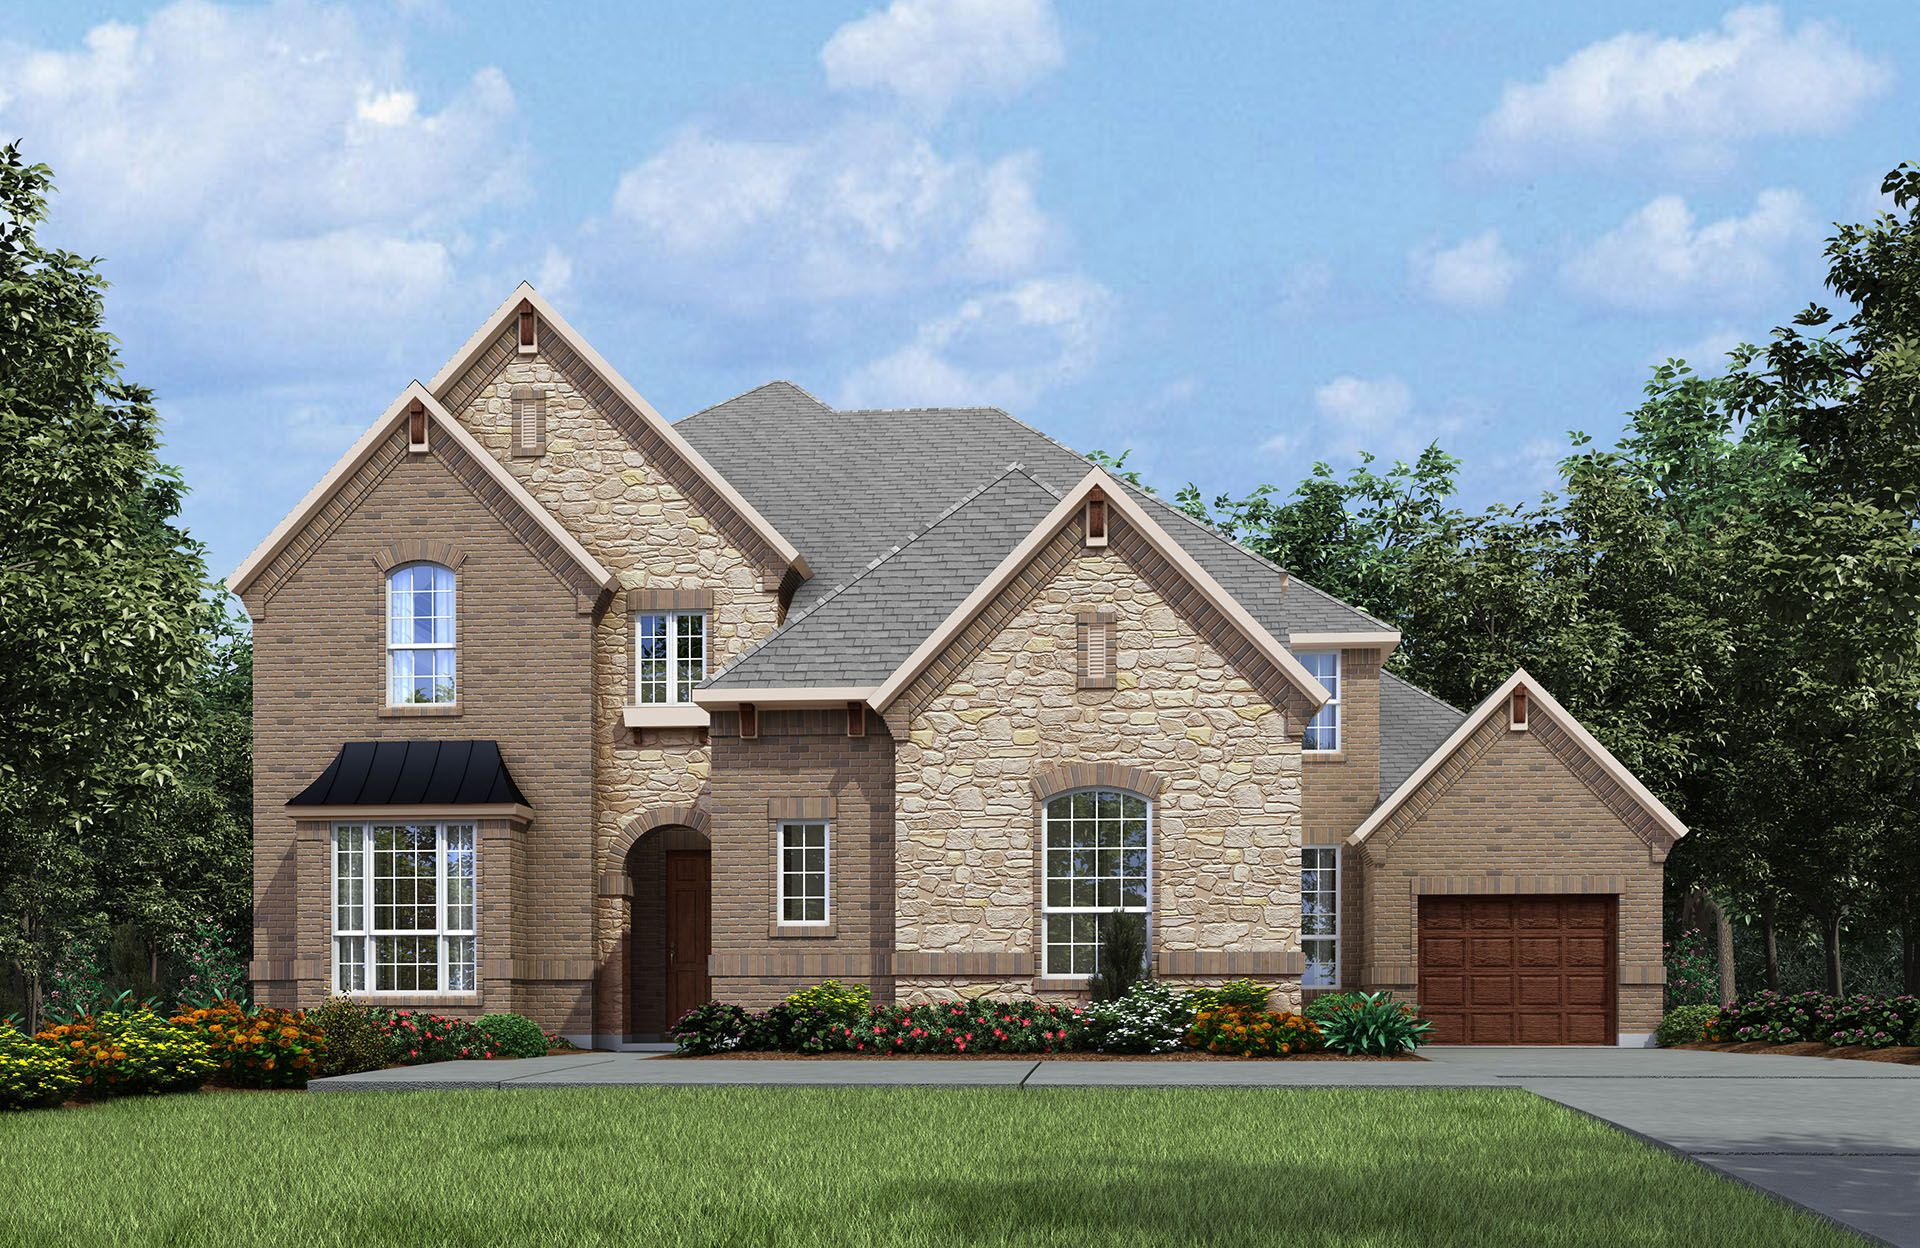 Single Family for Sale at Breezy Hill - Oakley Ii 795 Featherstone Rockwall, Texas 75087 United States